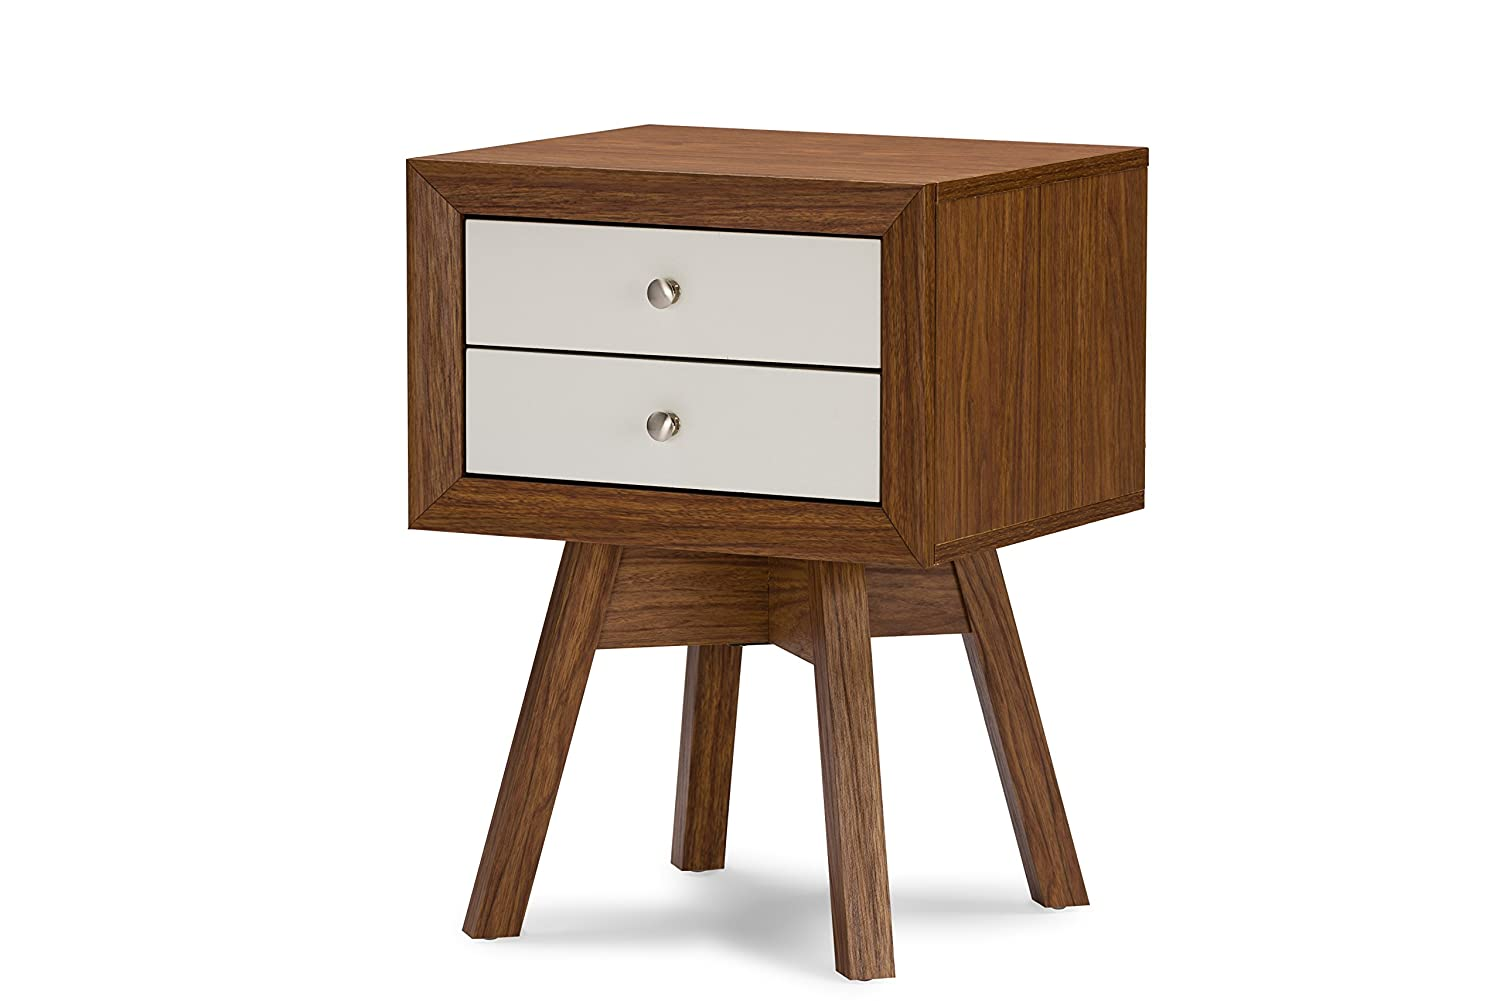 Merveilleux Amazon.com: Baxton Studio Warwick Two Tone Modern Accent Table And  Nightstand, Walnut/White: Kitchen U0026 Dining